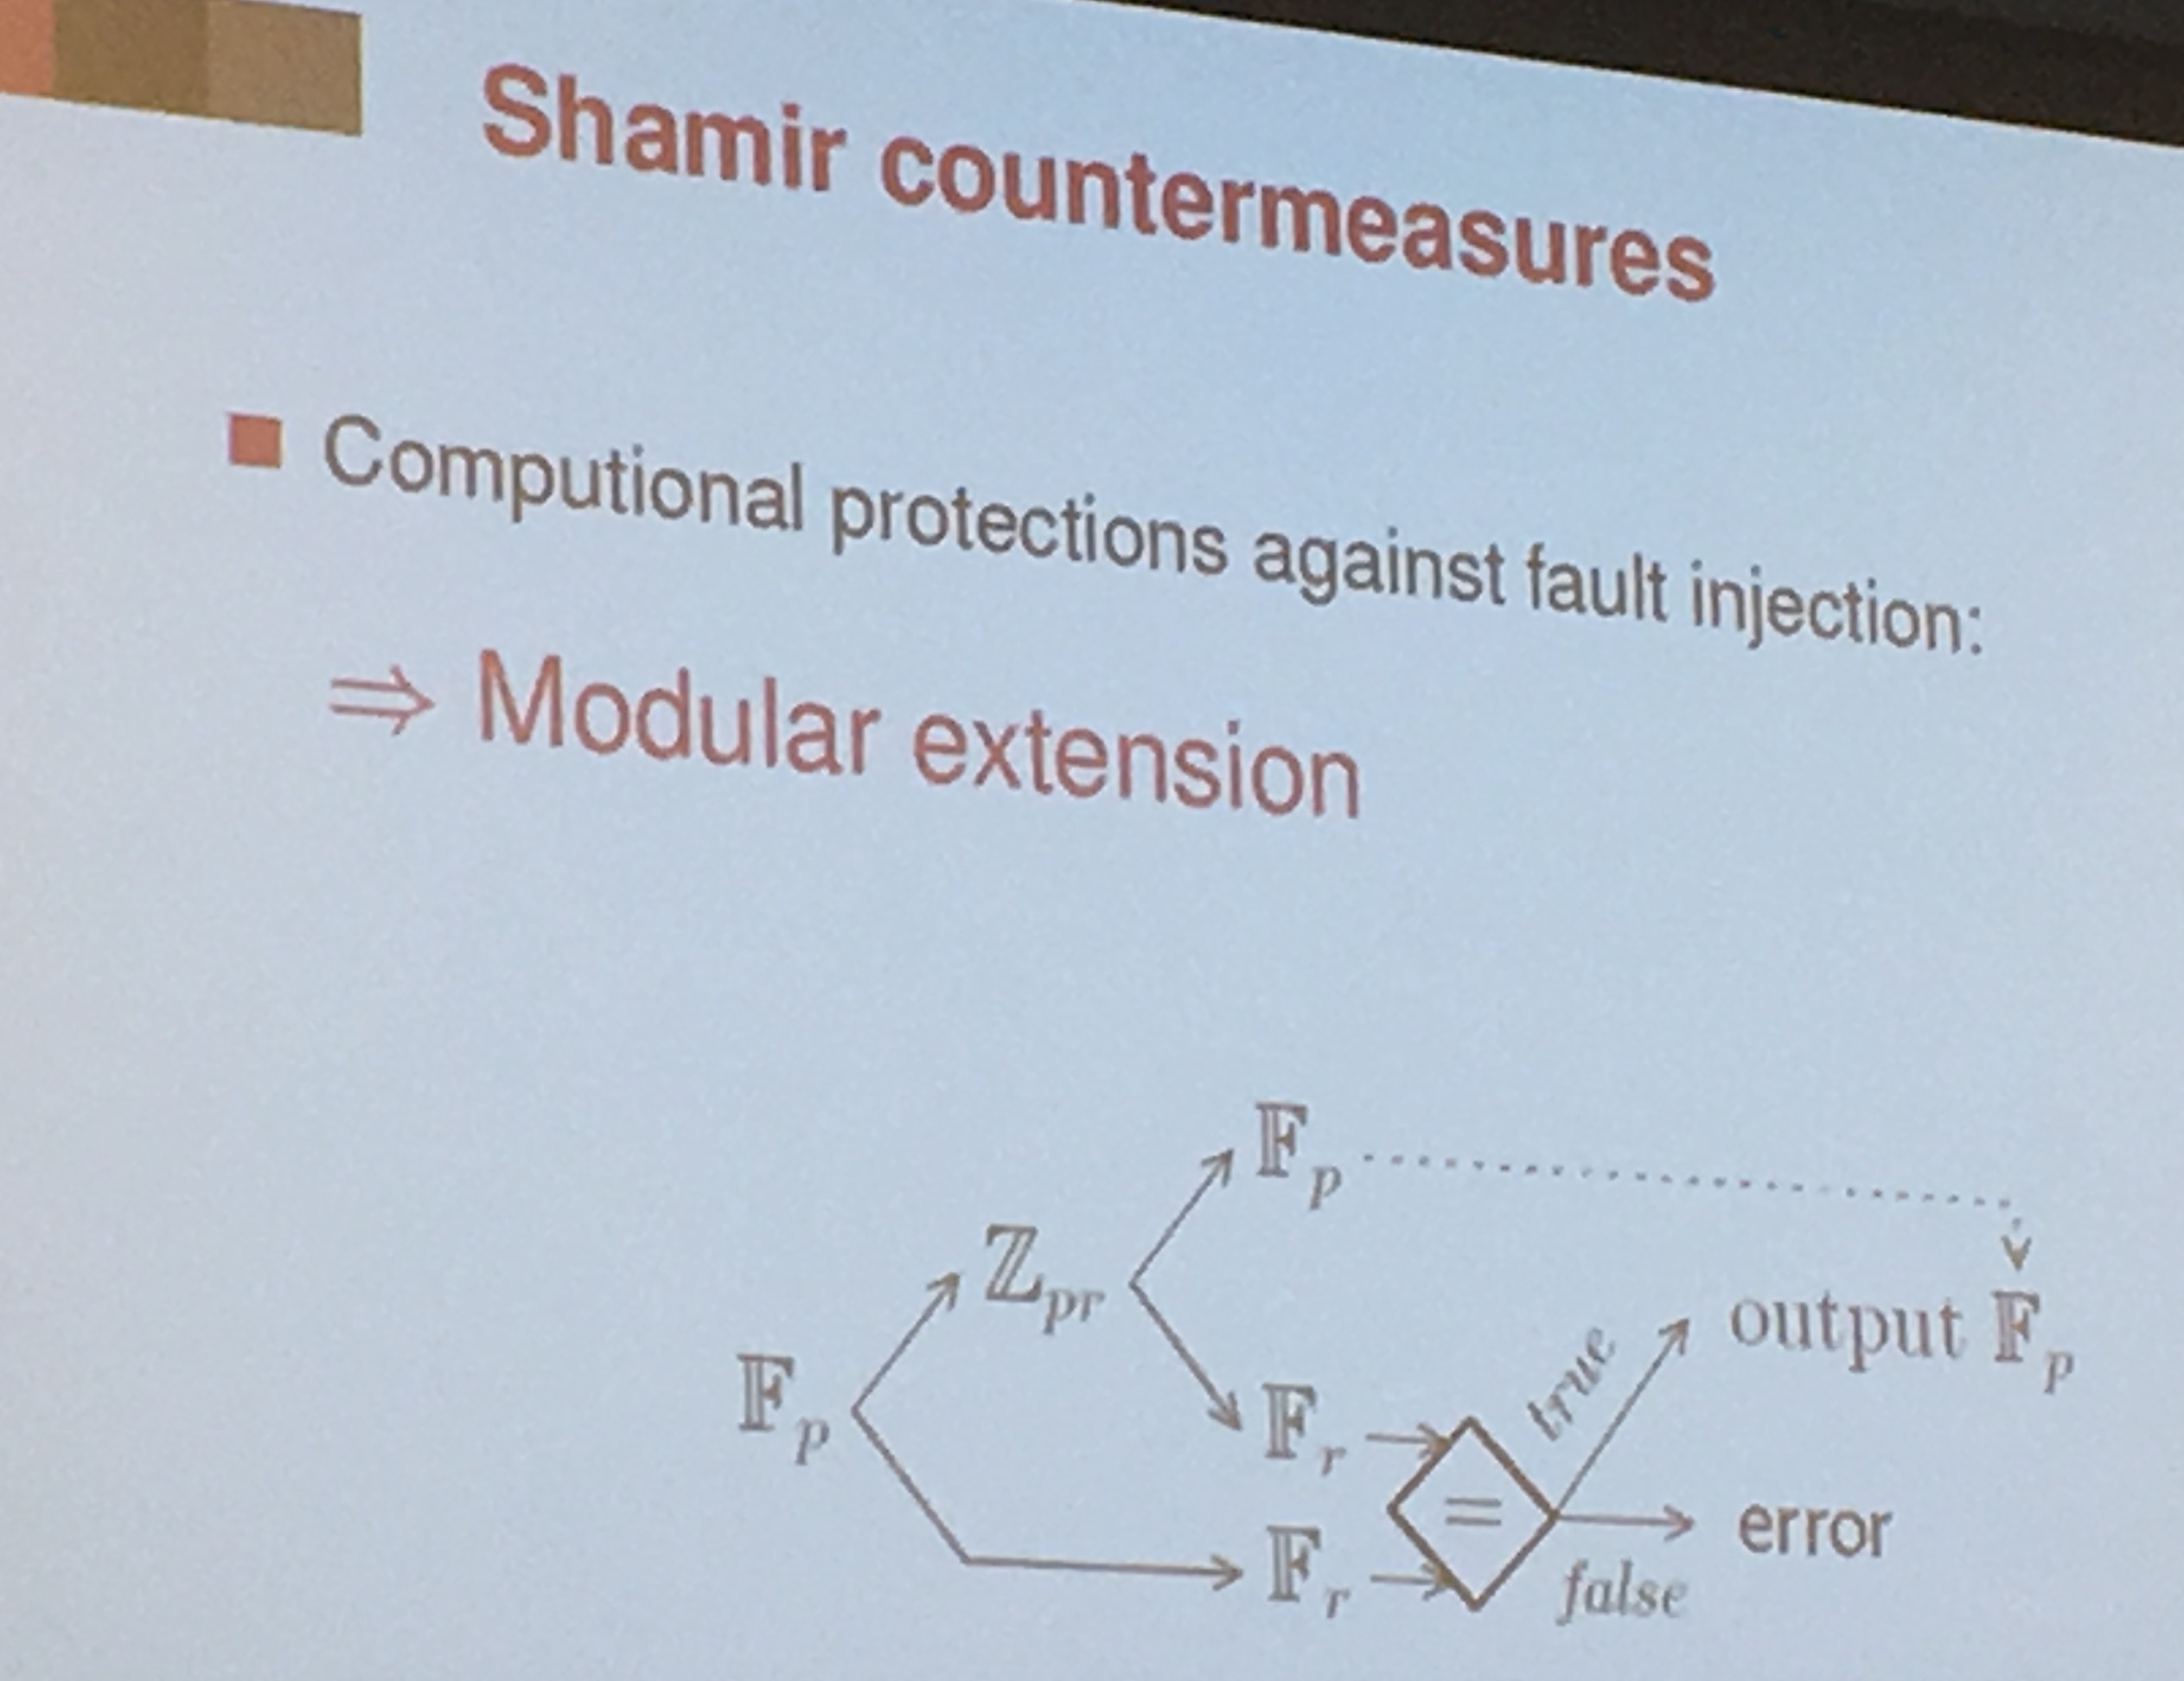 shamir countermeasure